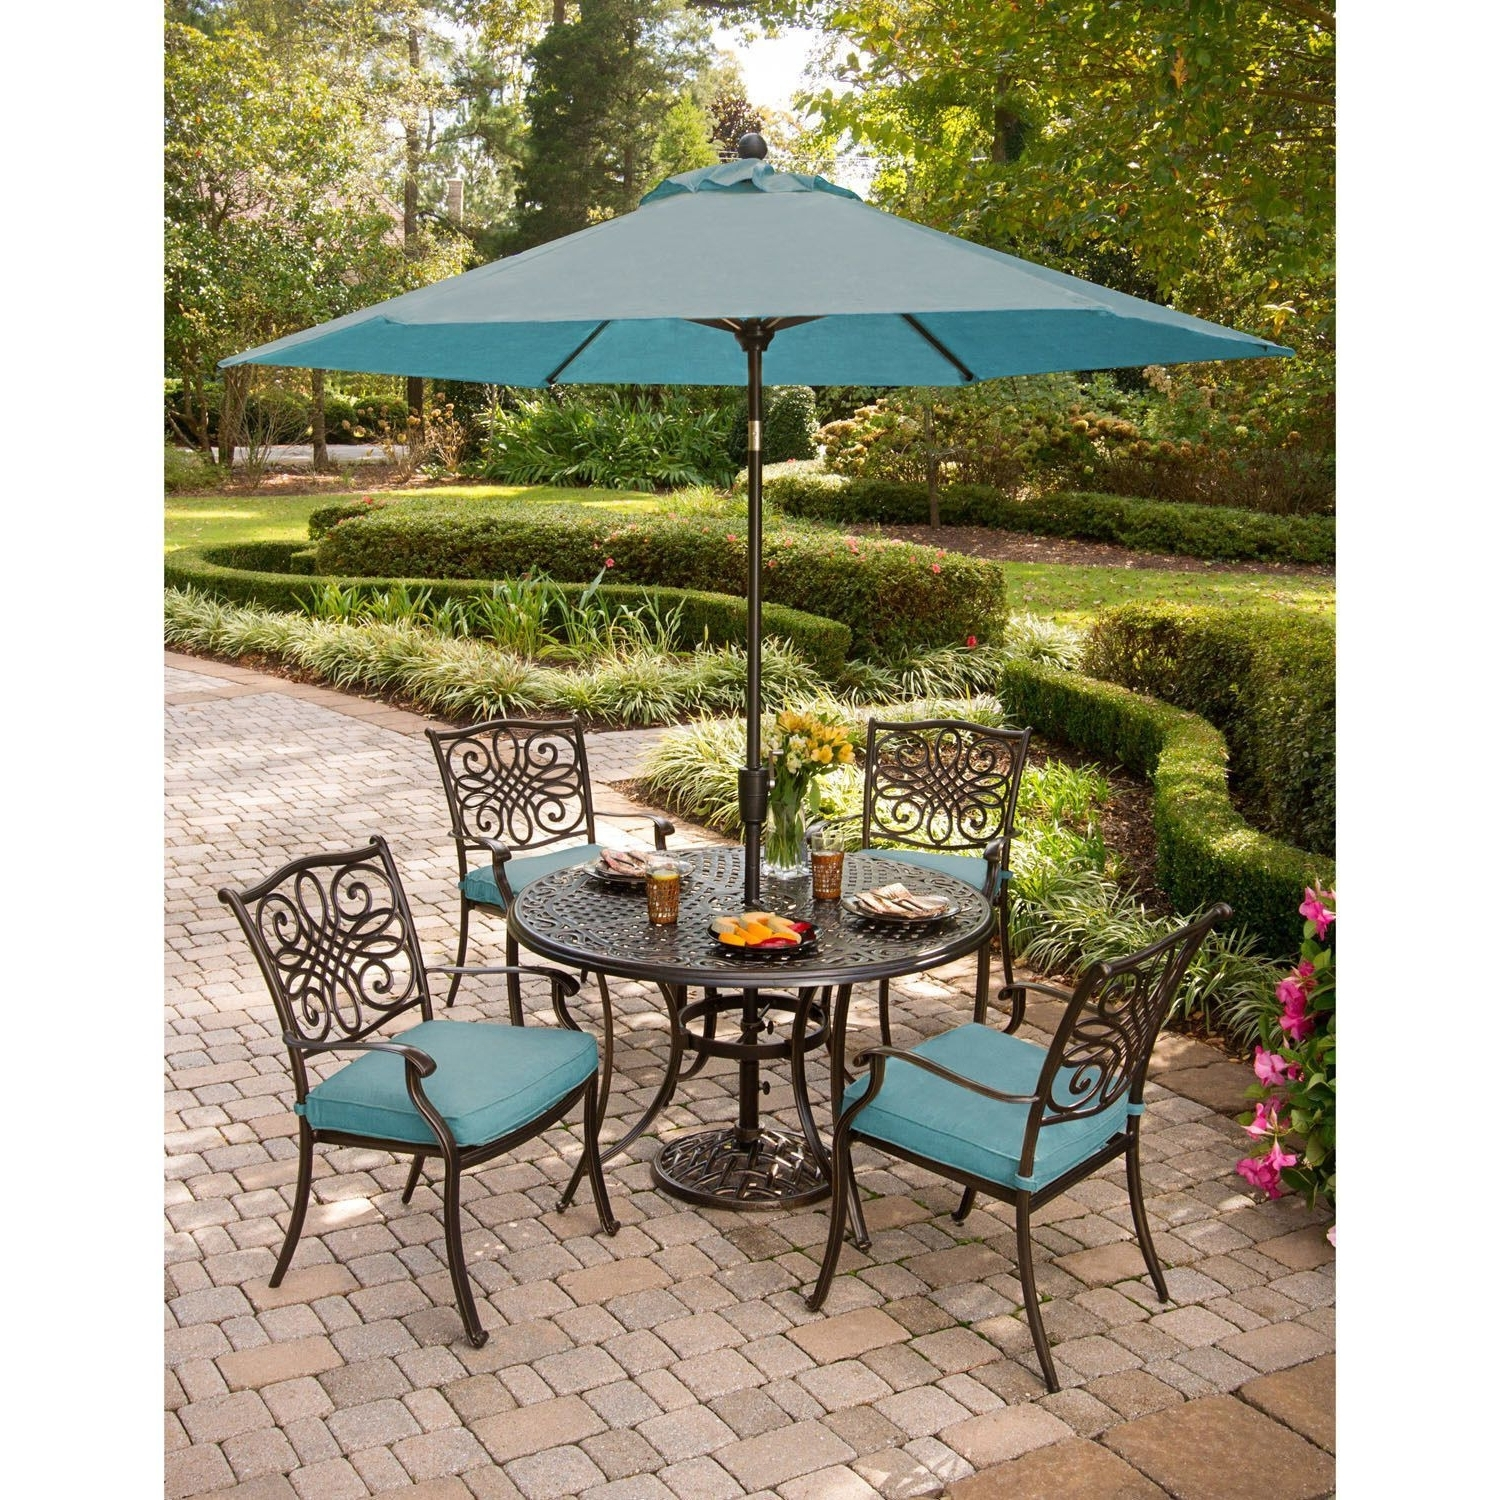 Small Patio Umbrellas Intended For Well Known Small Patio Umbrella Dazzling 22 Outdoor Umbrellas Furniture – Home (View 8 of 20)